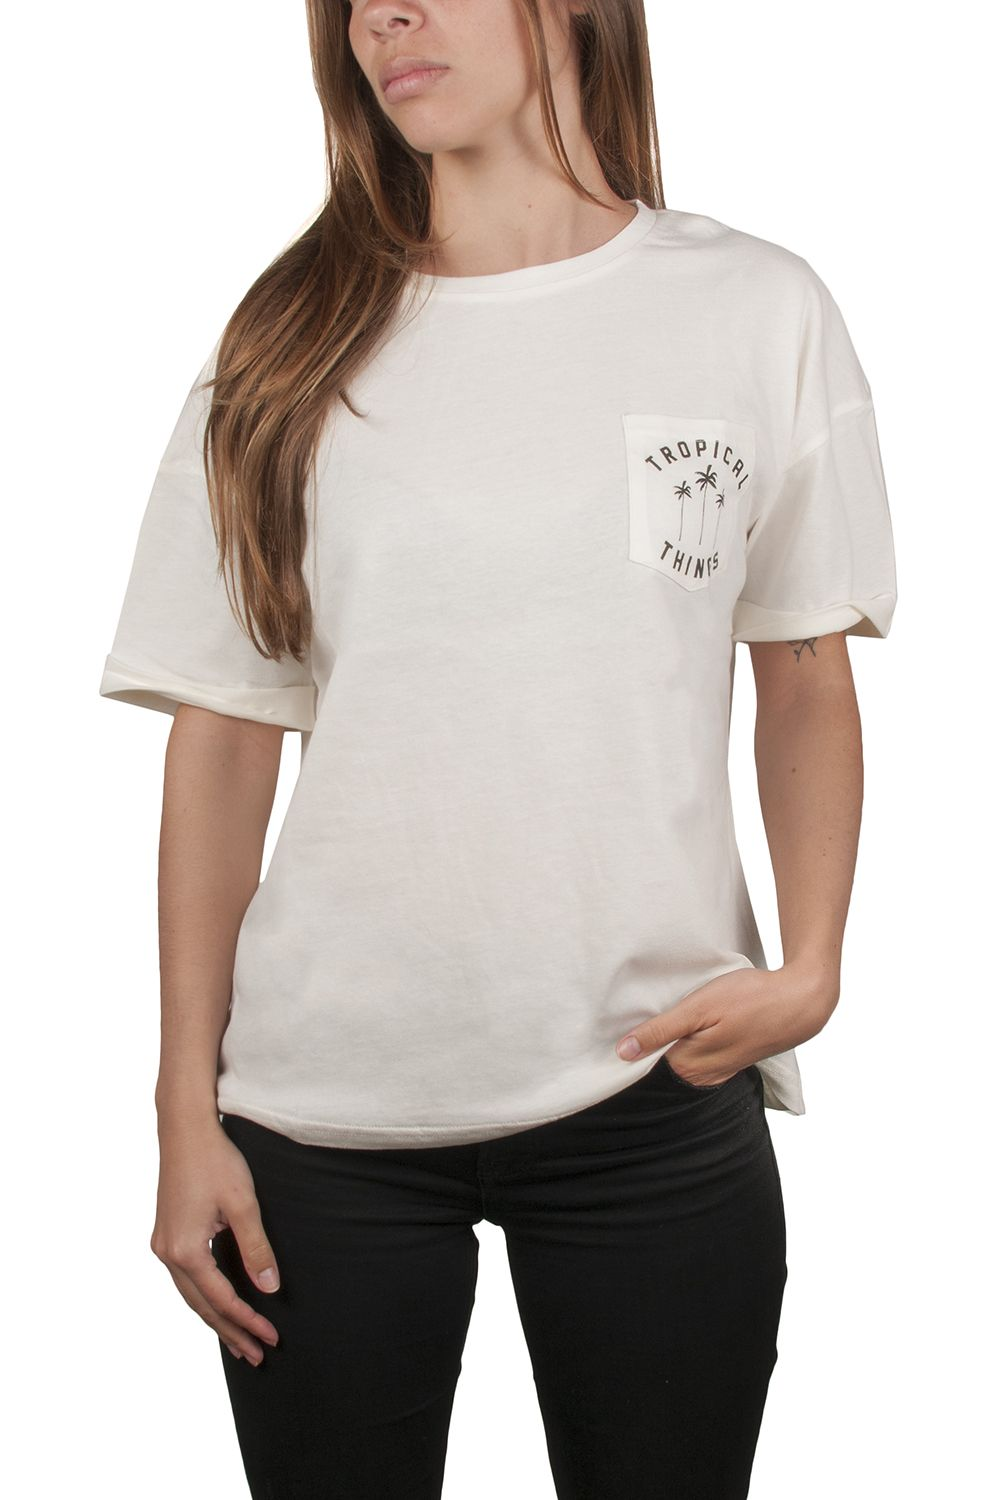 Ericeira Surf Skate T-Shirt TROPICAL THINGS Beije